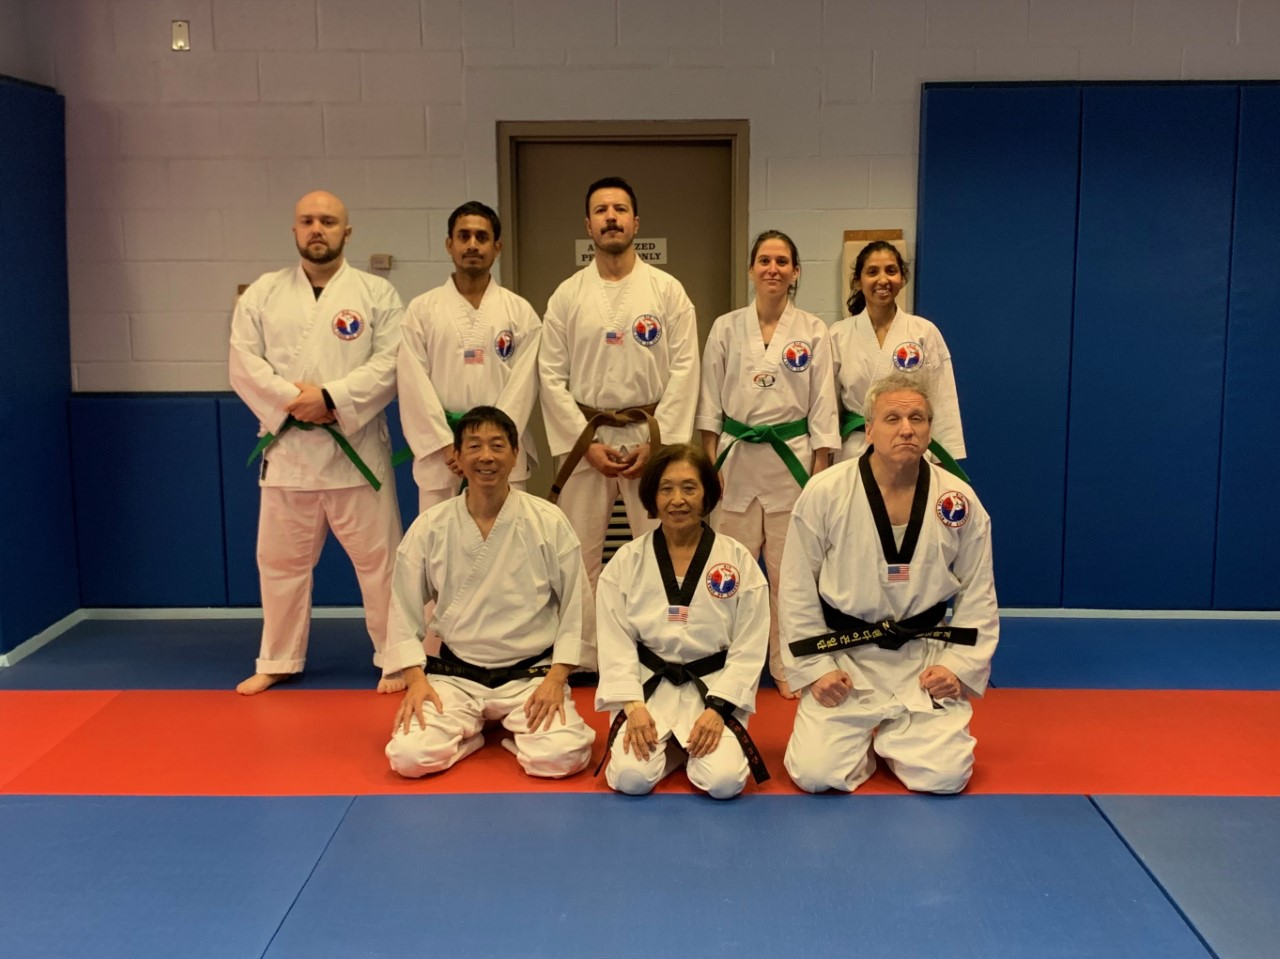 Congratulations to Ray Subhasis, Dinuka De Silva, Laurie Lannes, and Benjamin Fadl for their successful completion of the Green Belt Stripe exam on May 6th, 2019. NIH Taekwondo looks forward to holding more promotional exams in the near future.